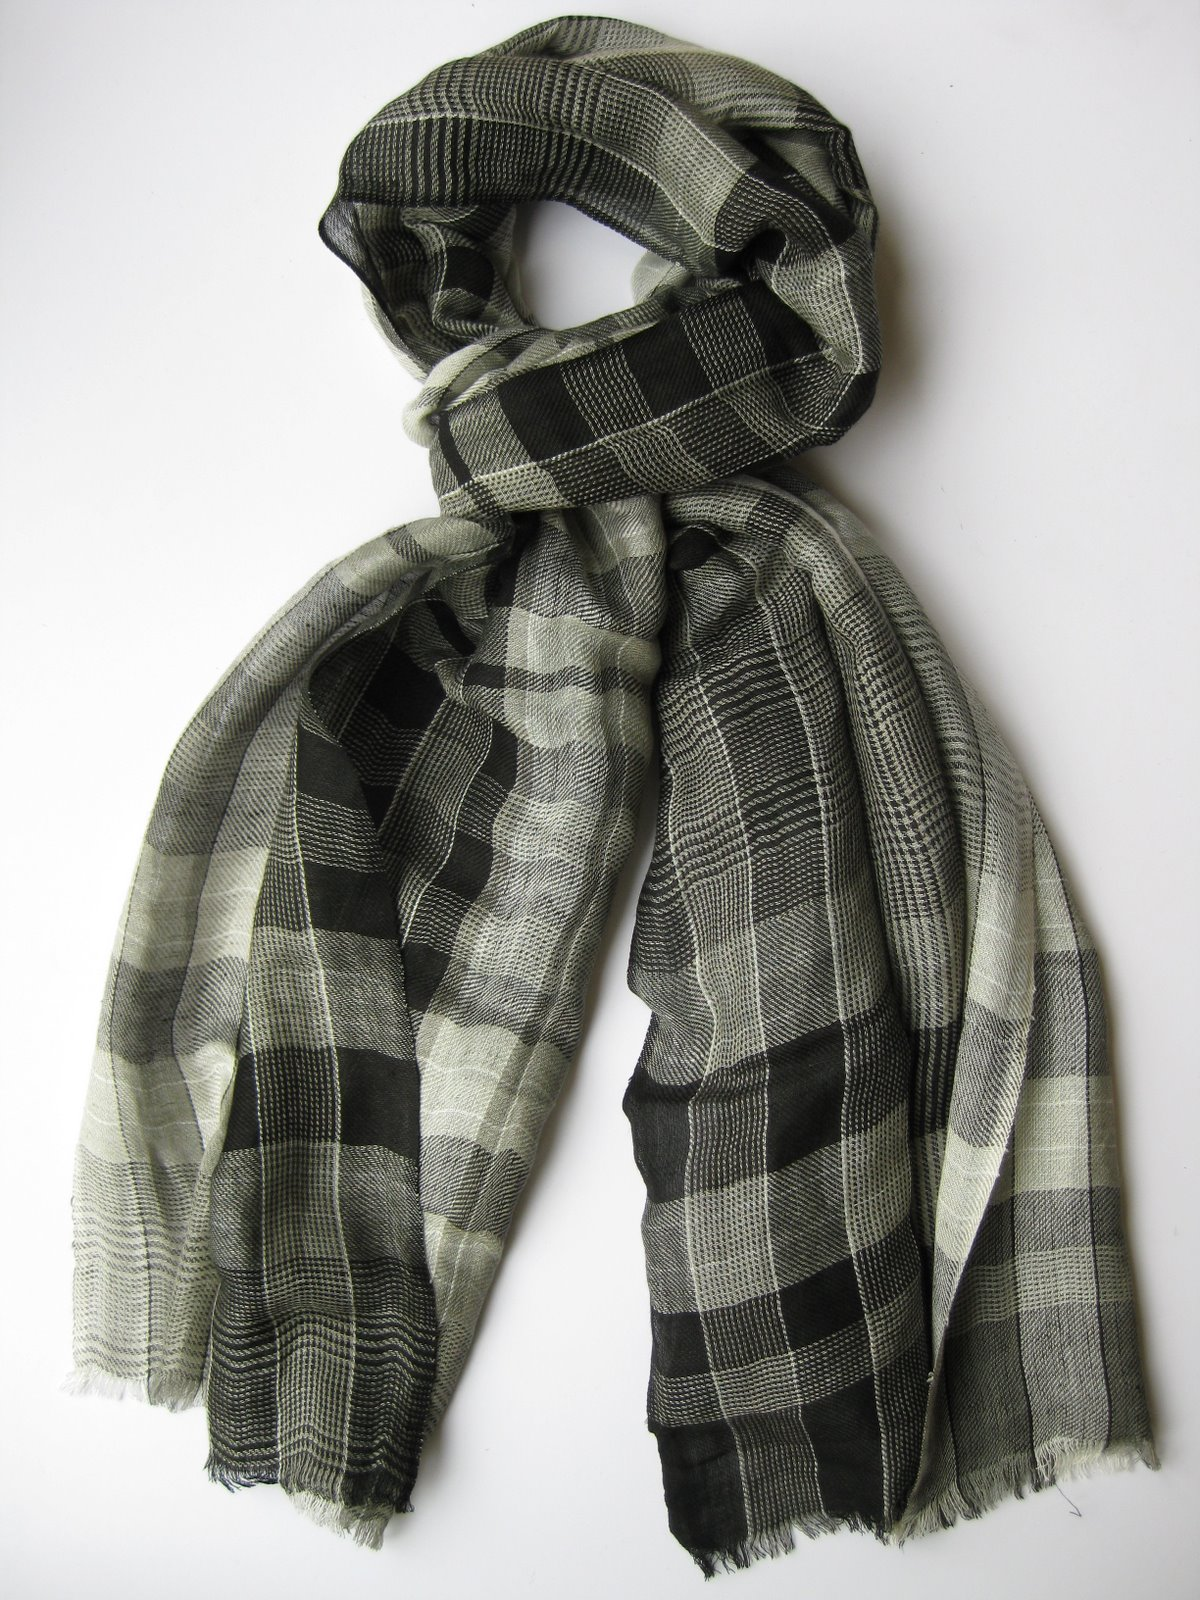 men scarves for men neck scarves for men Neck Scarves For Men Silk Neck Scarves For Men Silk